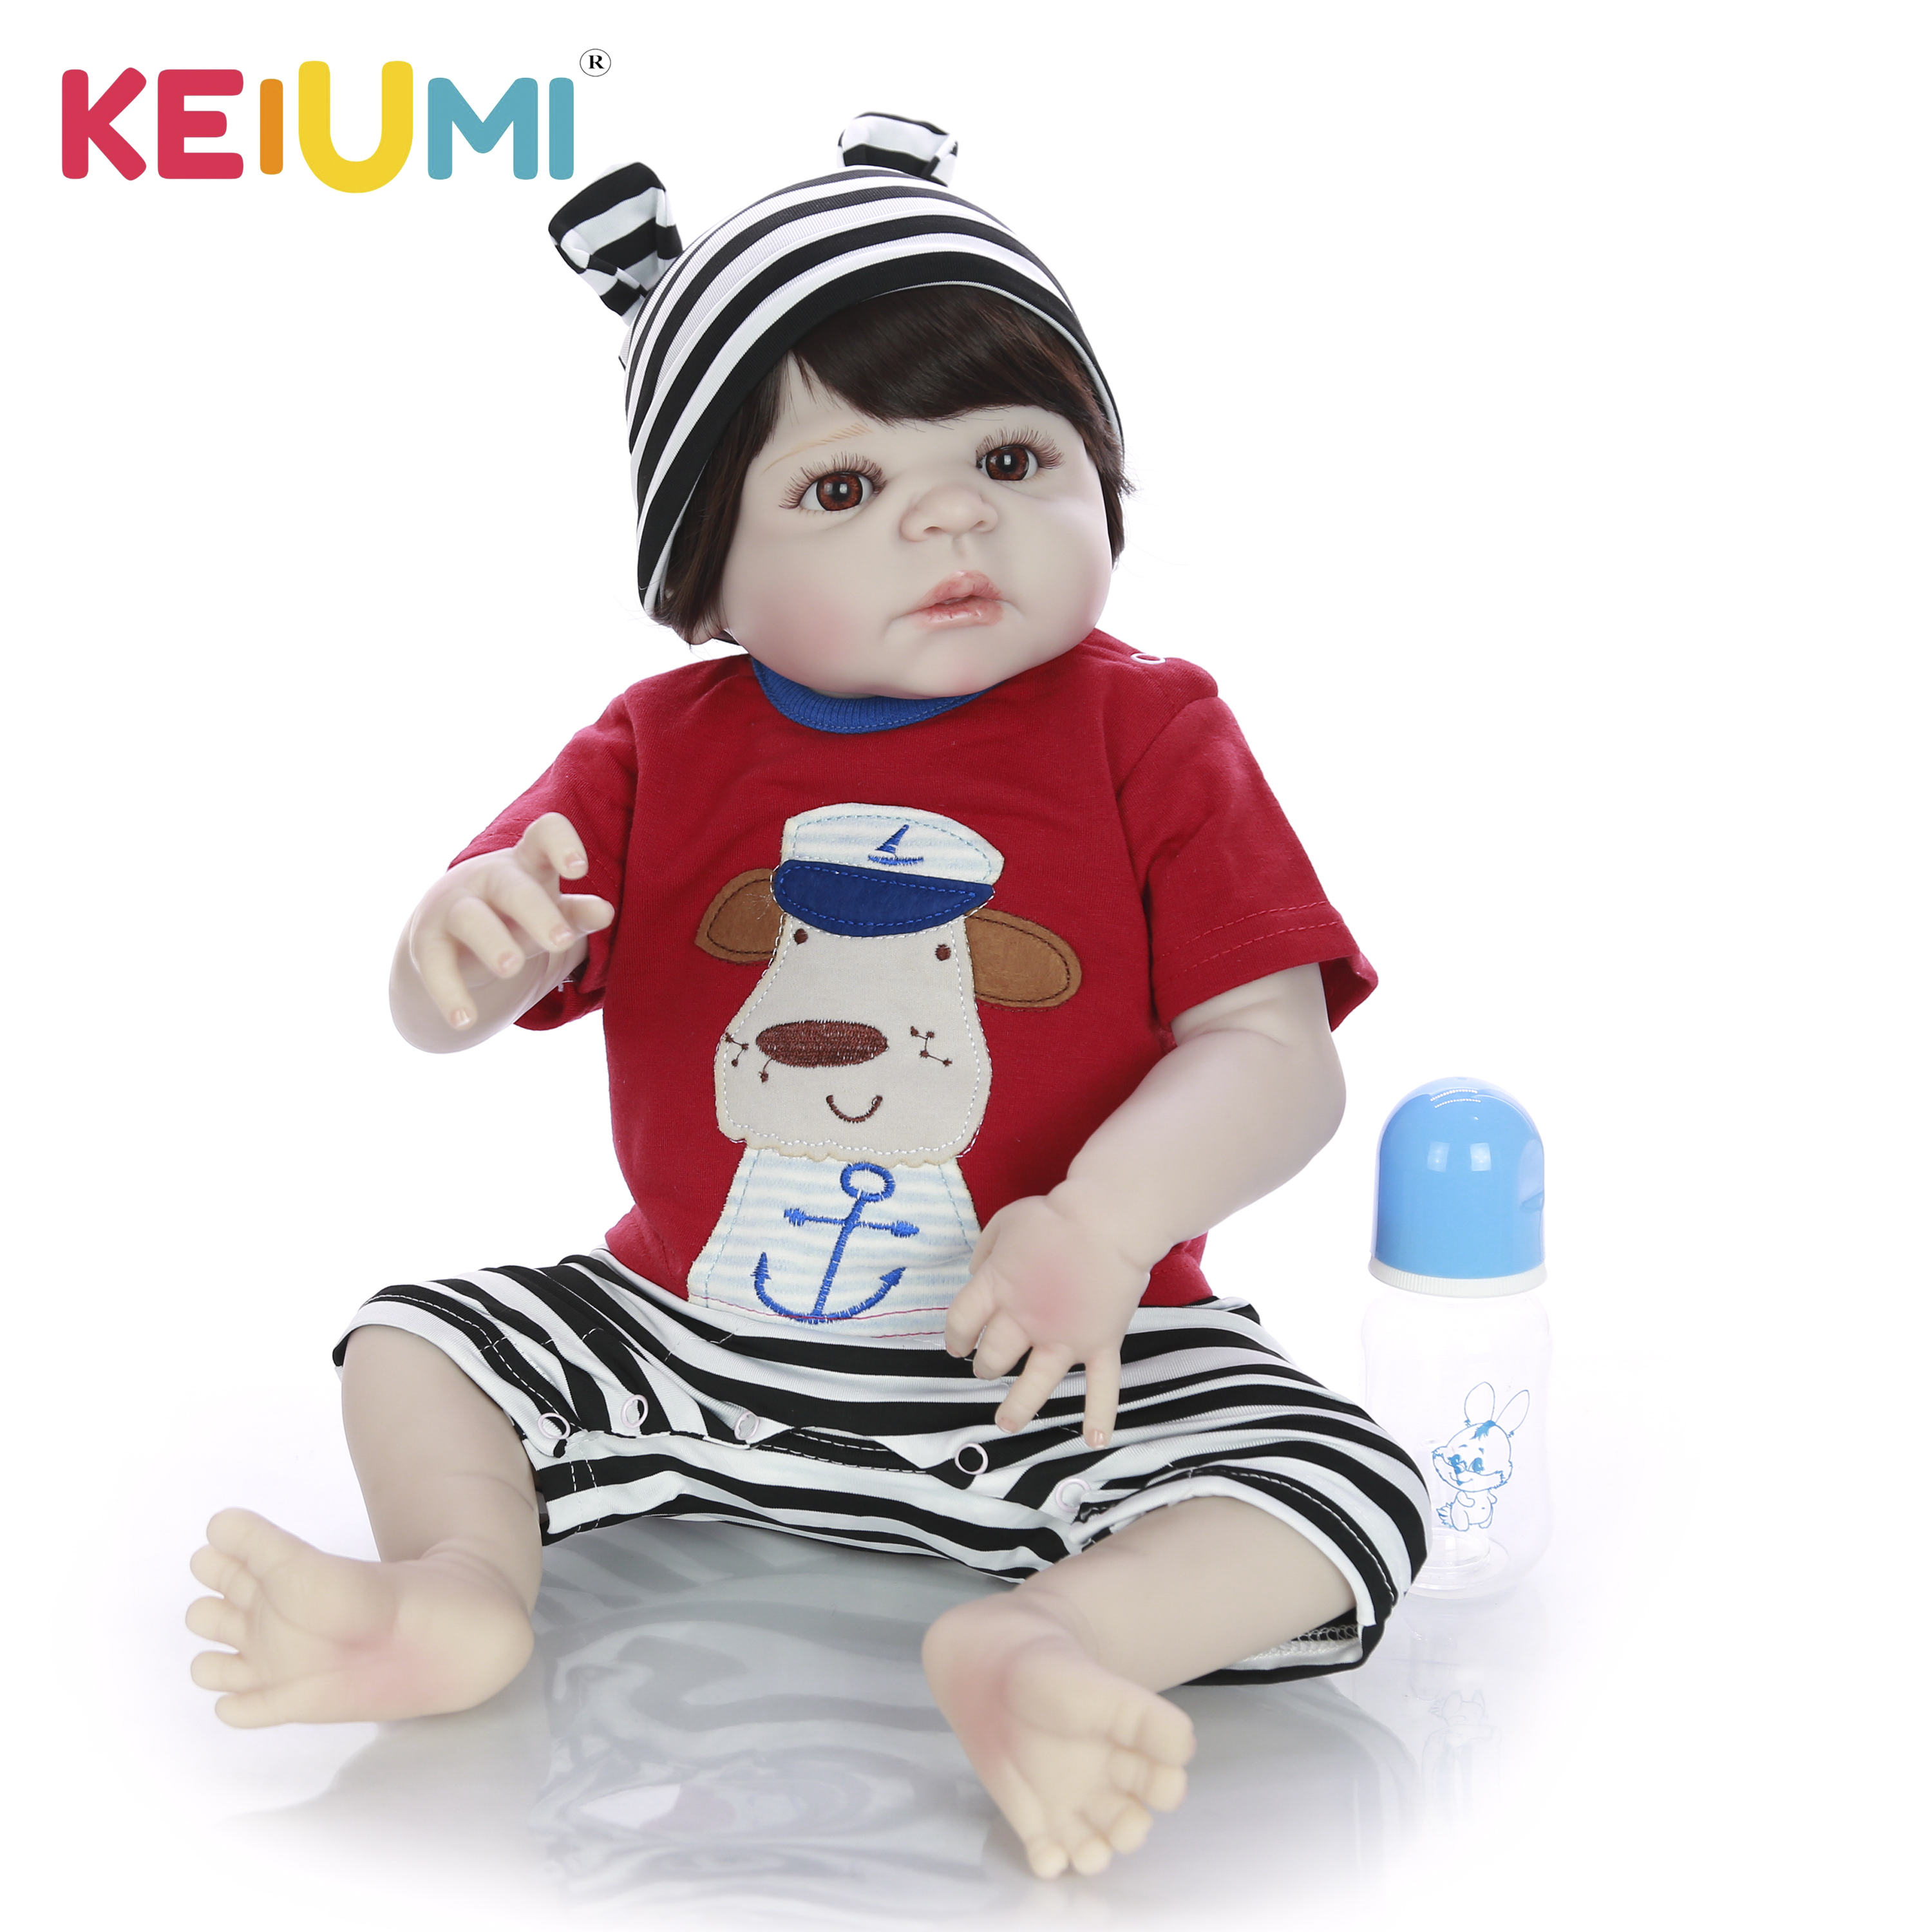 Fashion Reborn Baby Dolls Full Vinyl Body 23'' Realistic Silicone Boneca Reborns Hot Sale Baby Boy Toys Newborn Dolls For Gifts-in Dolls from Toys & Hobbies    1